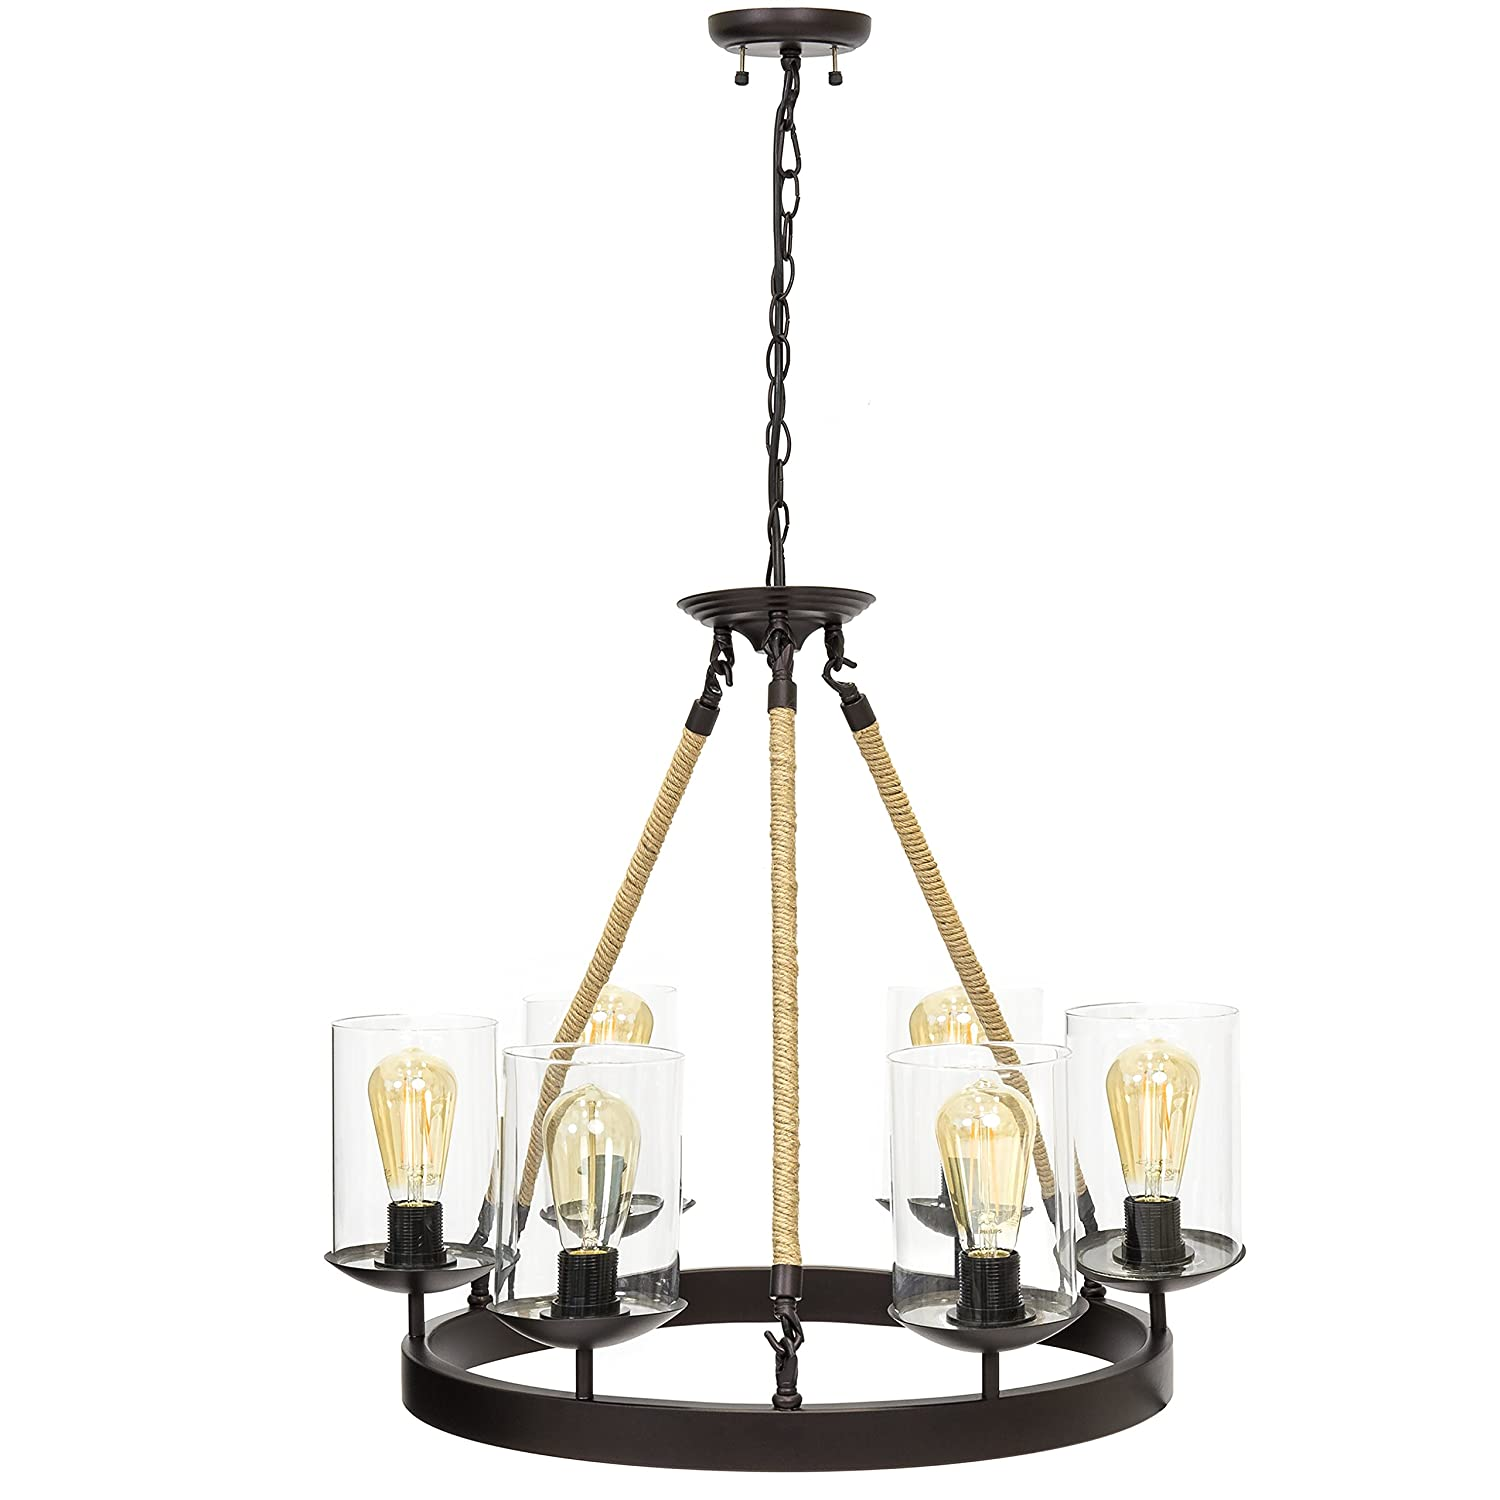 Best Choice Products Living Dining Room Modern Rustic Rope Design 6-Light Chandelier Pendant Lighting Fixture